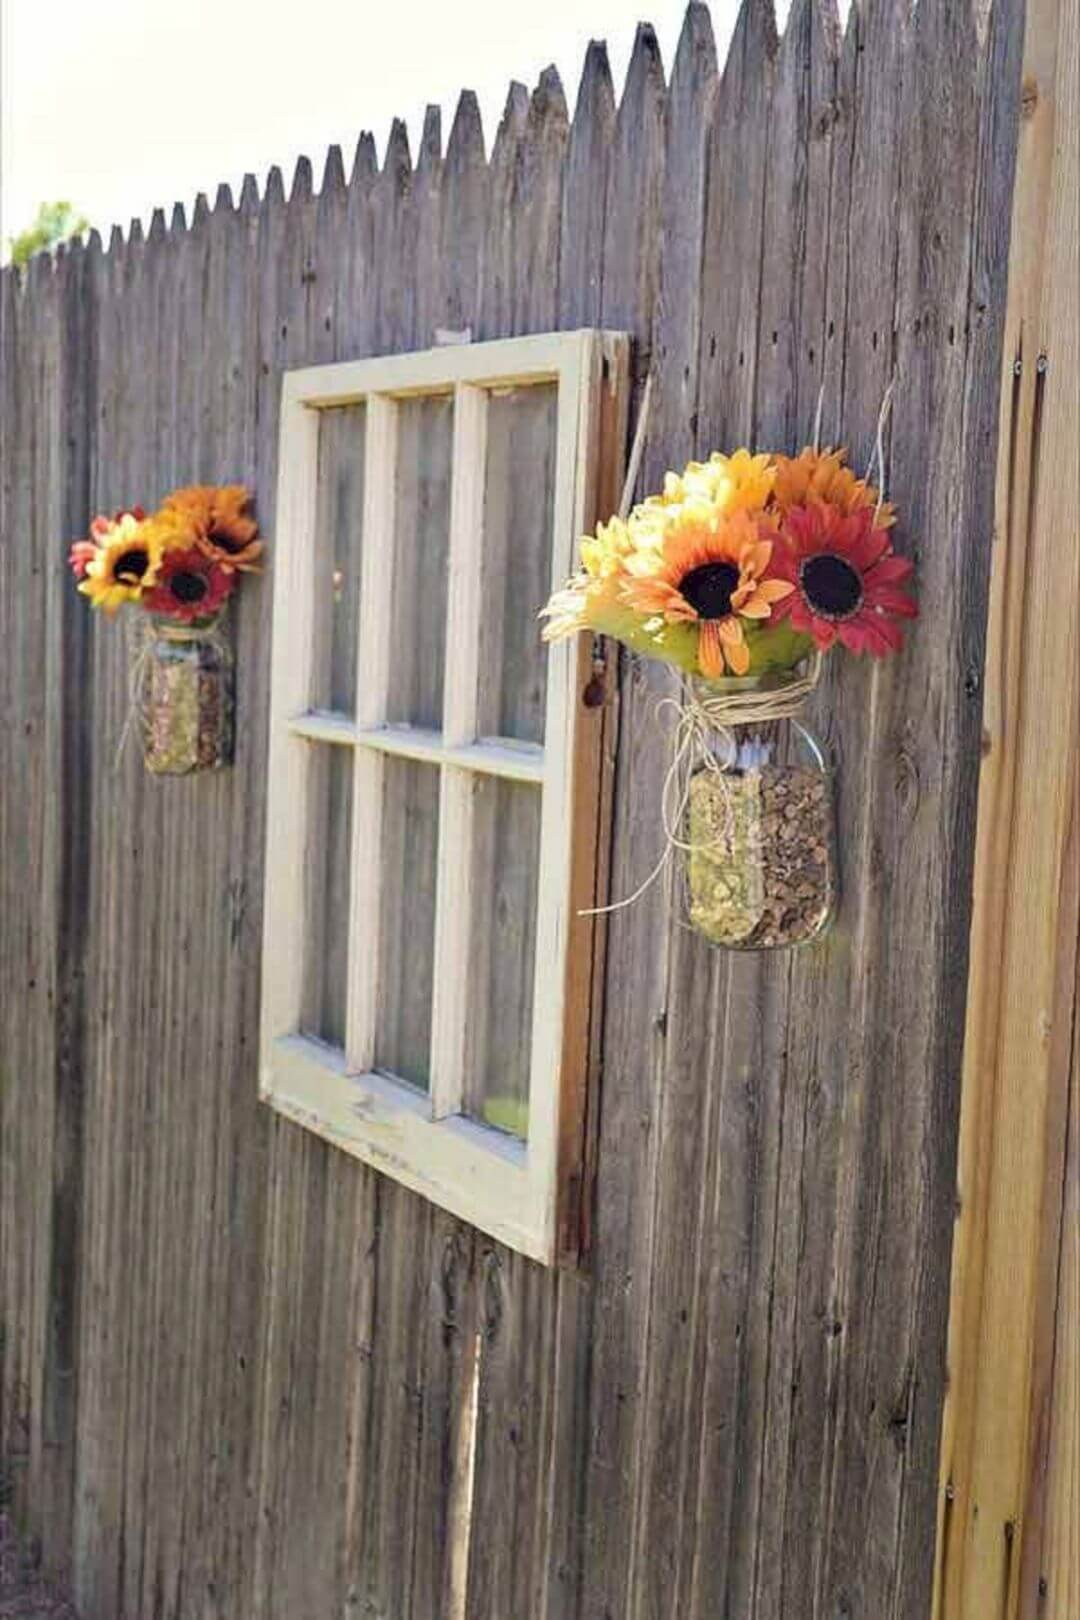 Reused Old Window with Charming Sunflowers